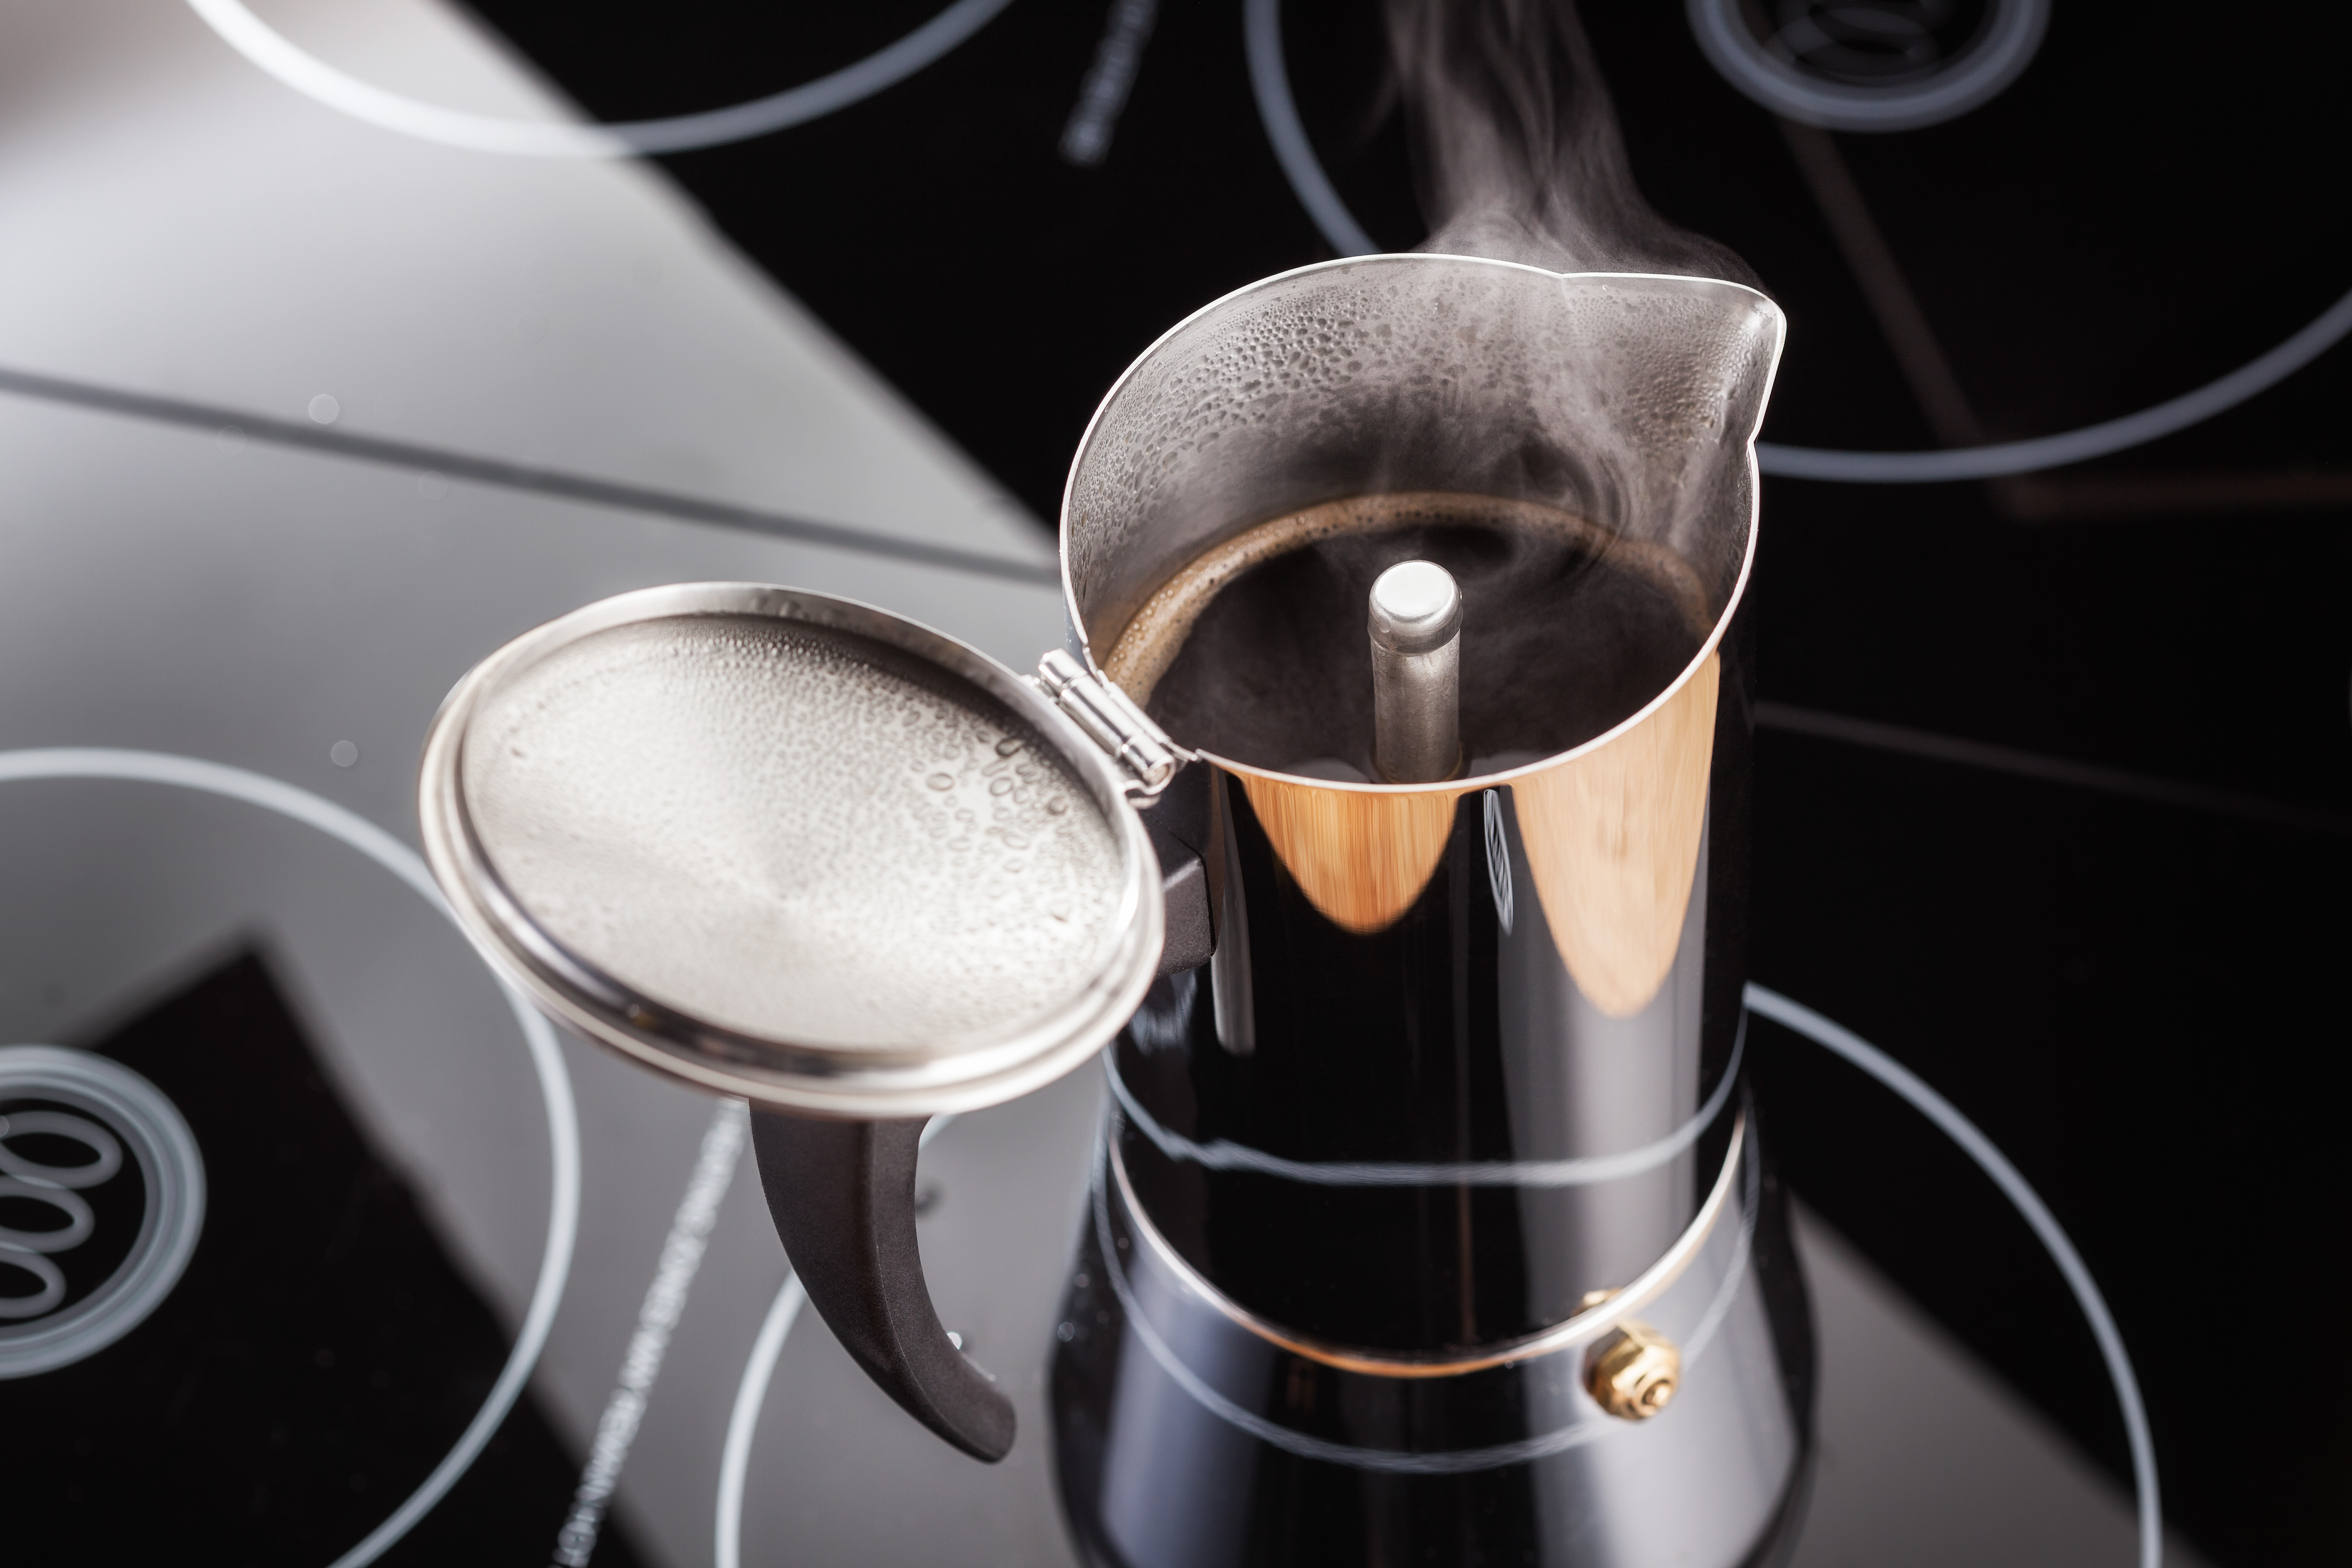 StellarHib Top Espresso Maker